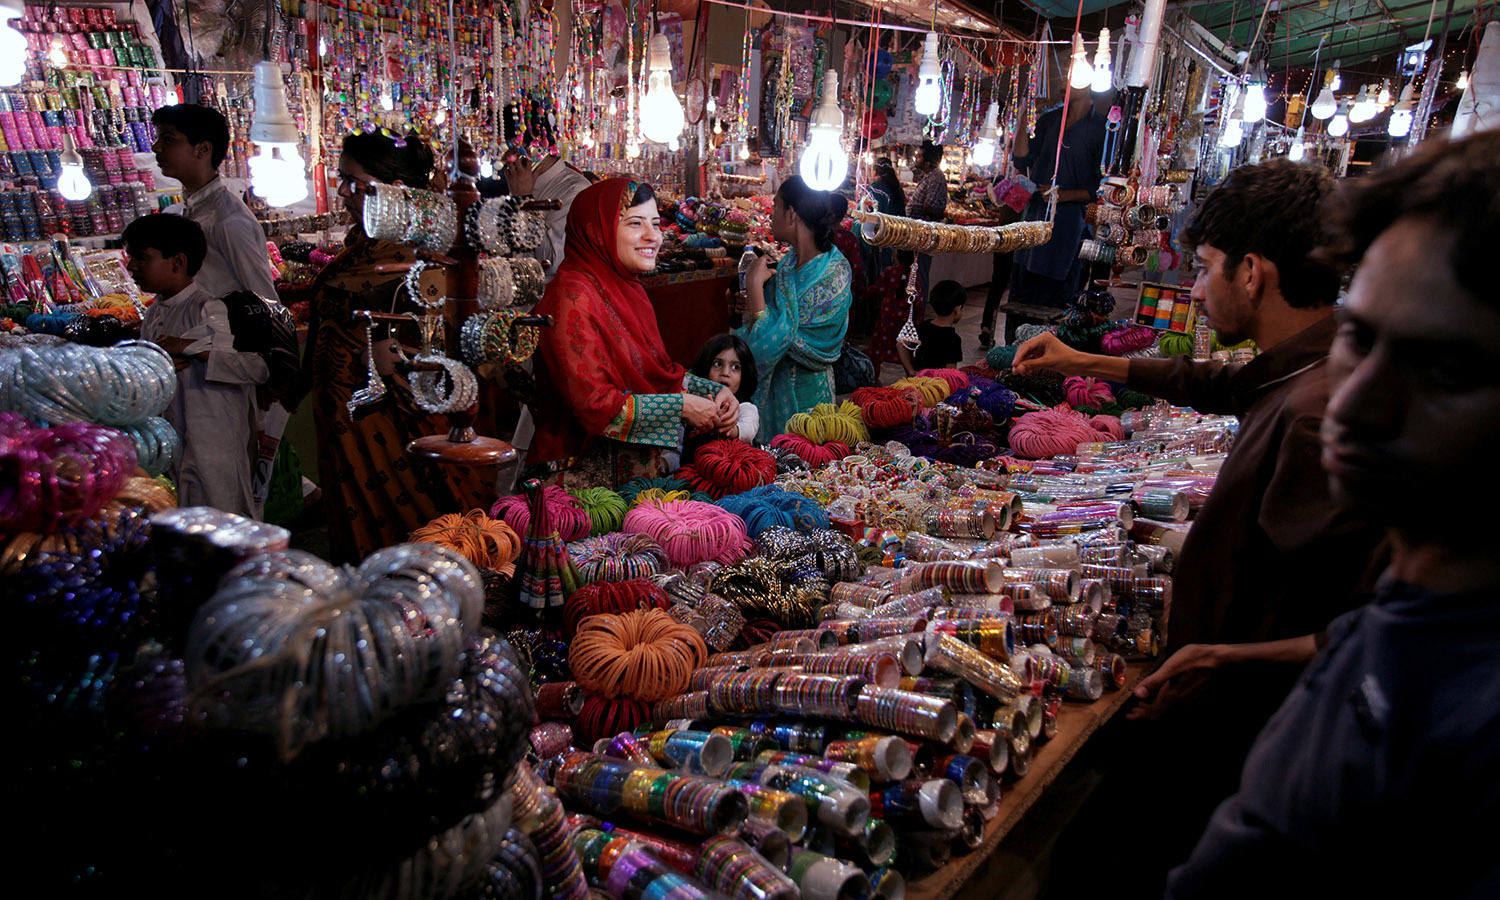 ISLAMABAD: A woman buys bangles and jewellery at a stall ahead of Eidul Fitr on Tuesday. —REUTERS/Faisal Mahmood